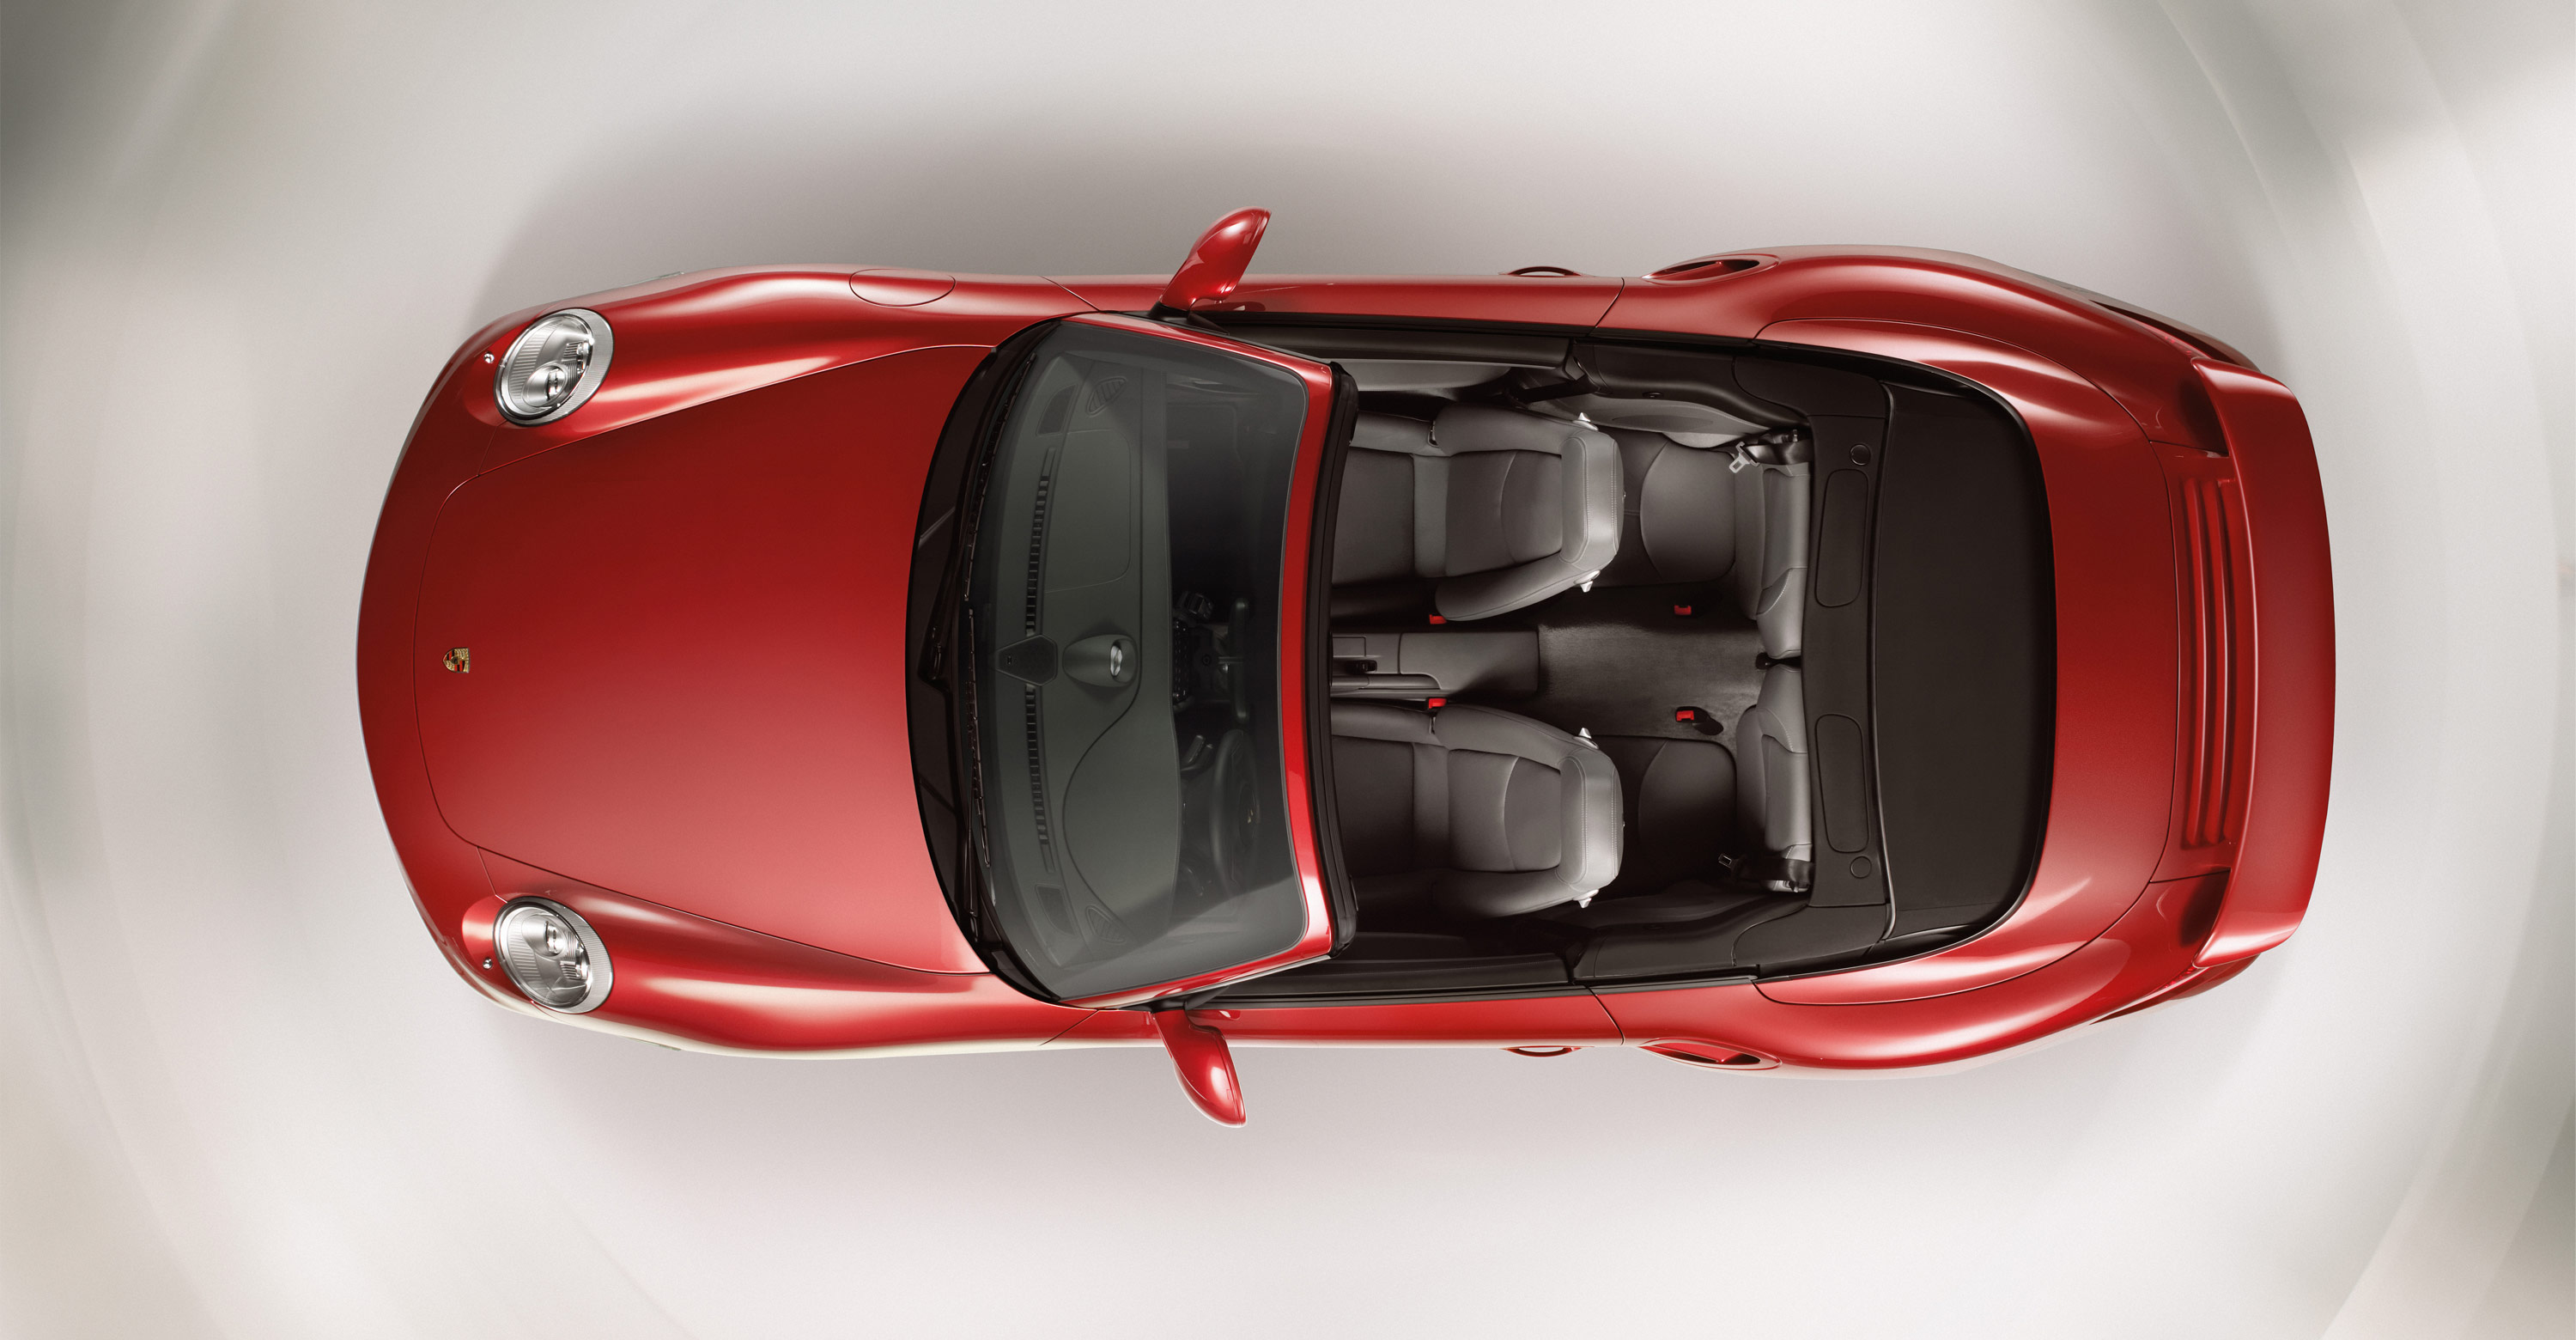 2011 Red Porsche 911 Turbo Cabriolet Wallpapers